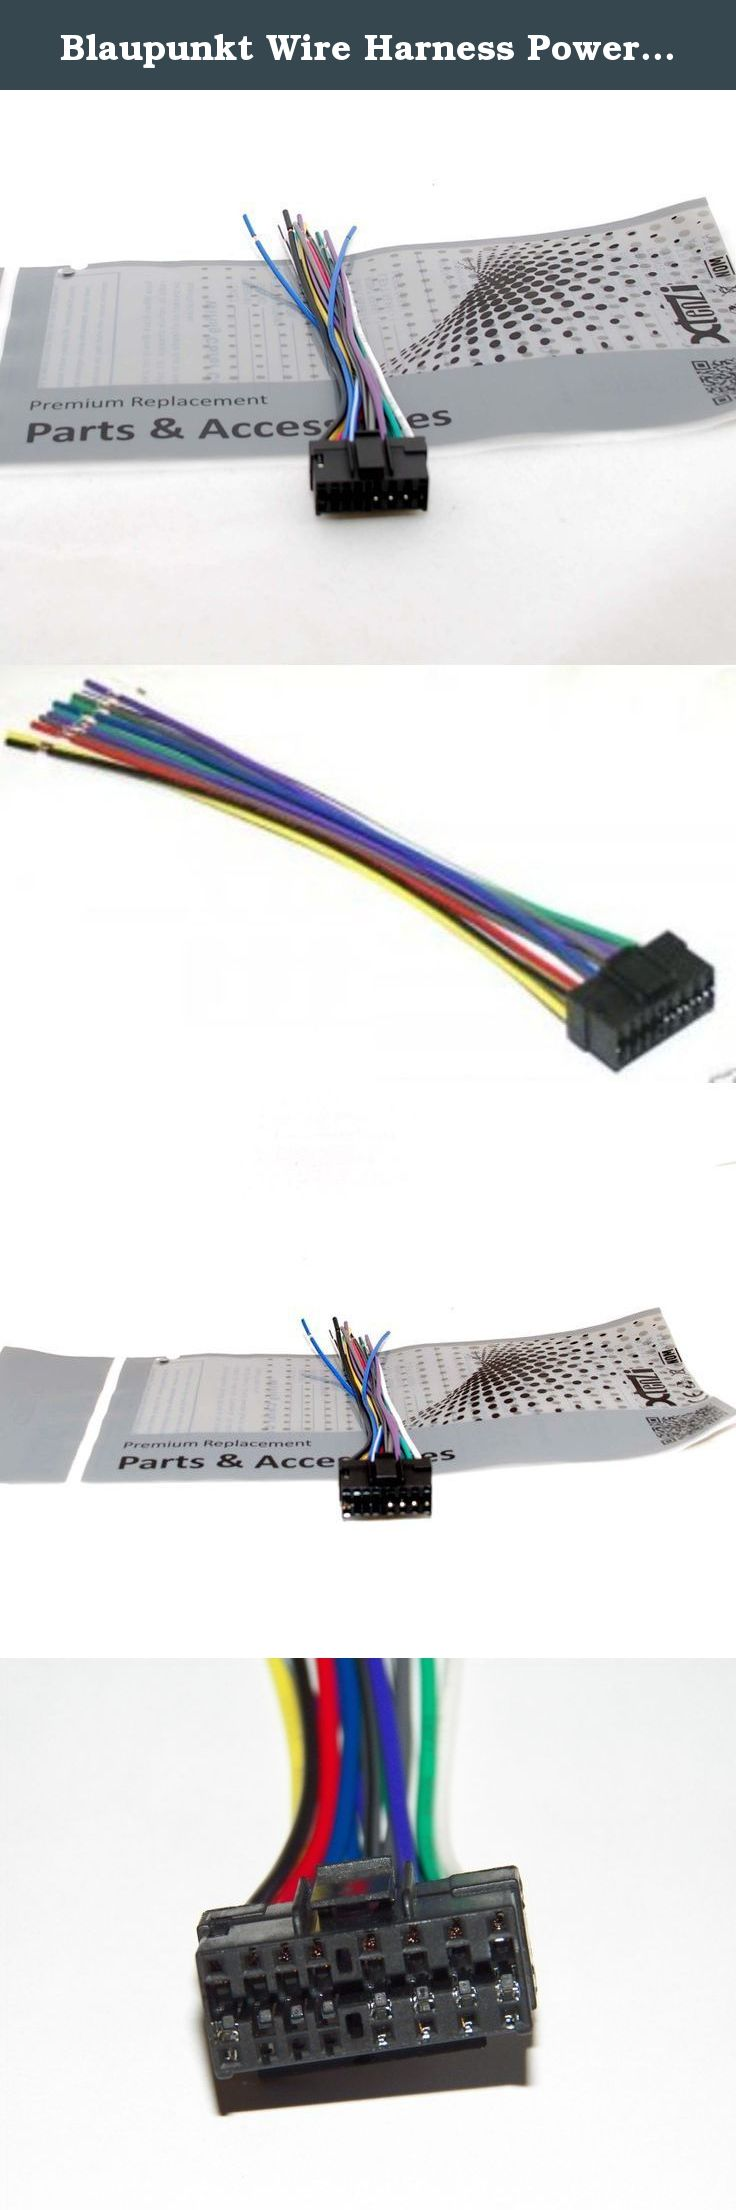 hight resolution of blaupunkt wire harness power plug cd mp3 dvd car stereo head unit 16 pin